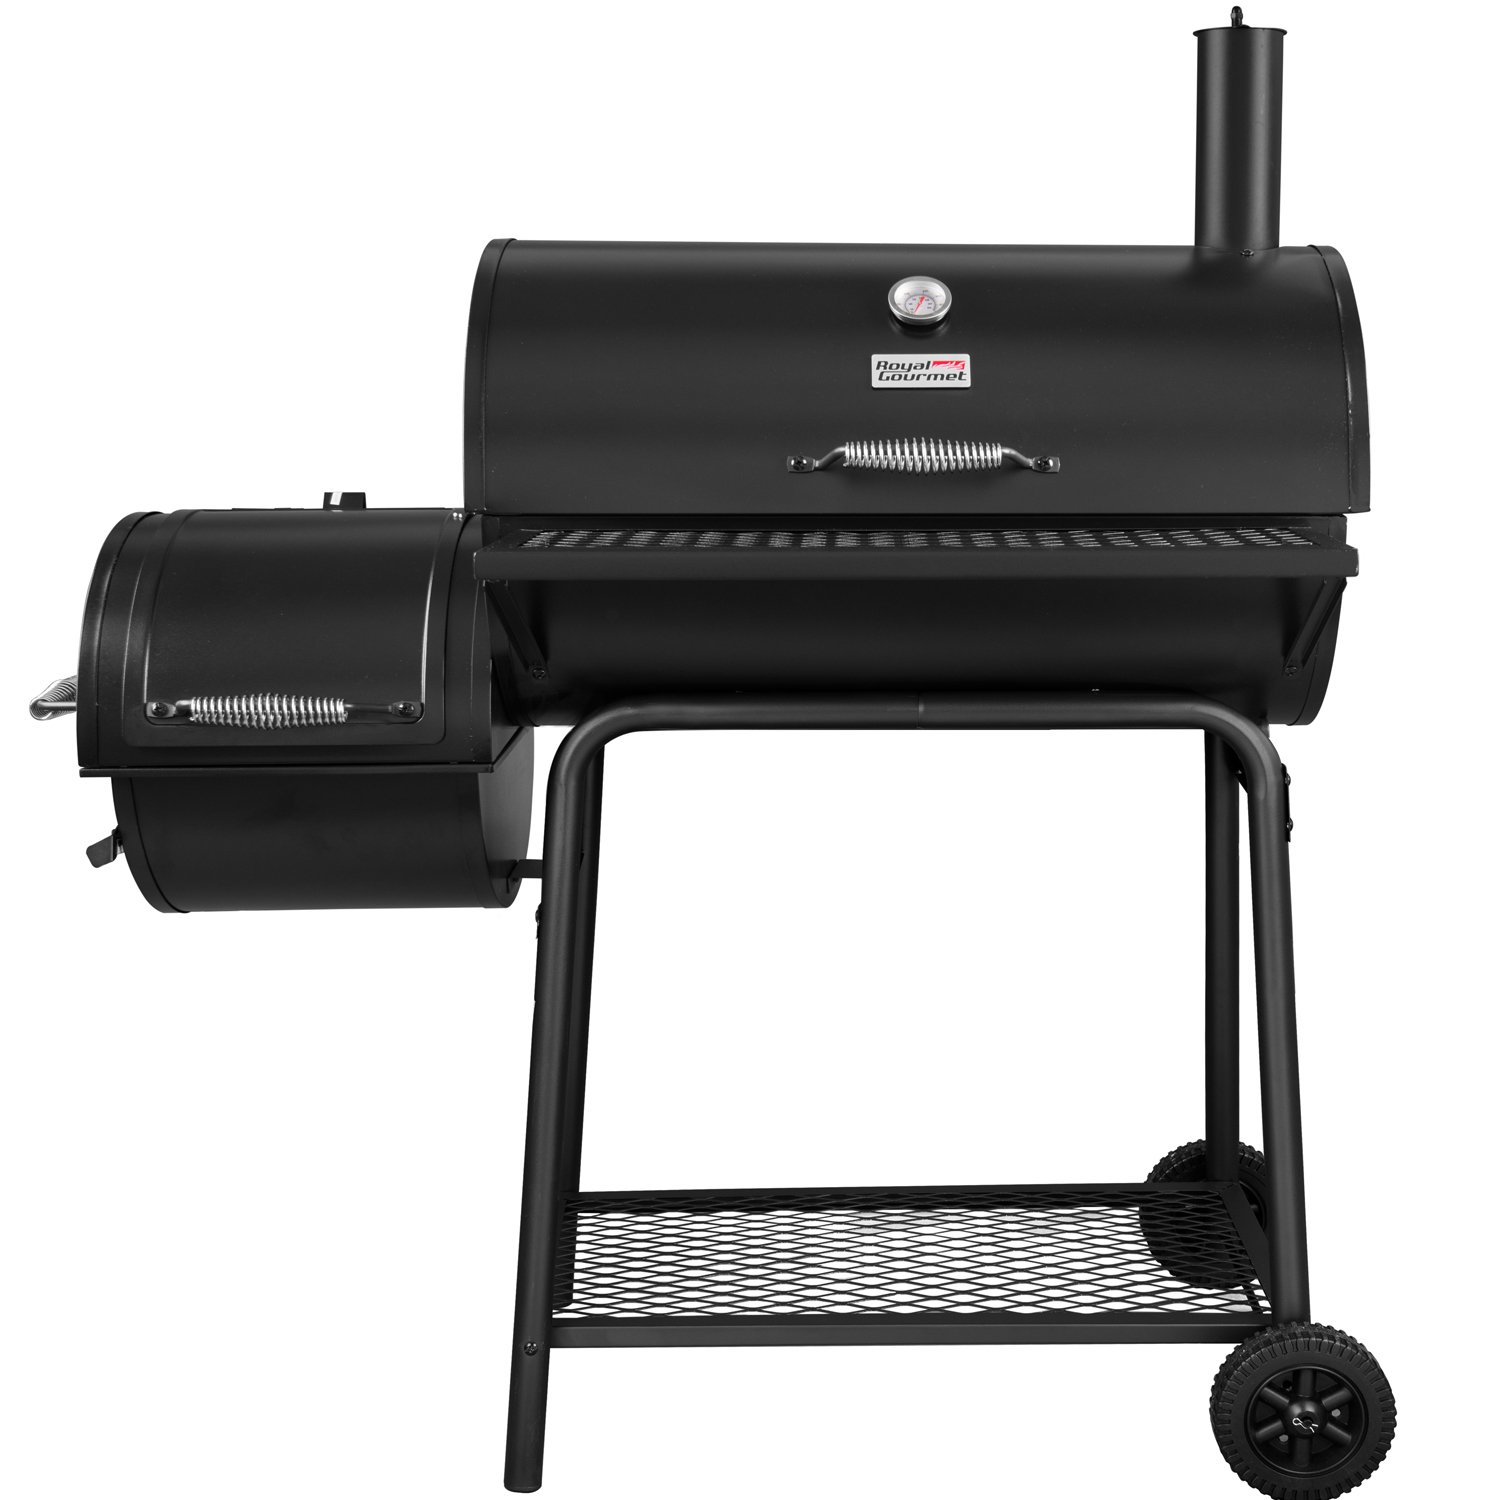 Royal Gourmet CC1830F Charcoal Grill with Offset Smoker, Black Royal Gourmet Corp